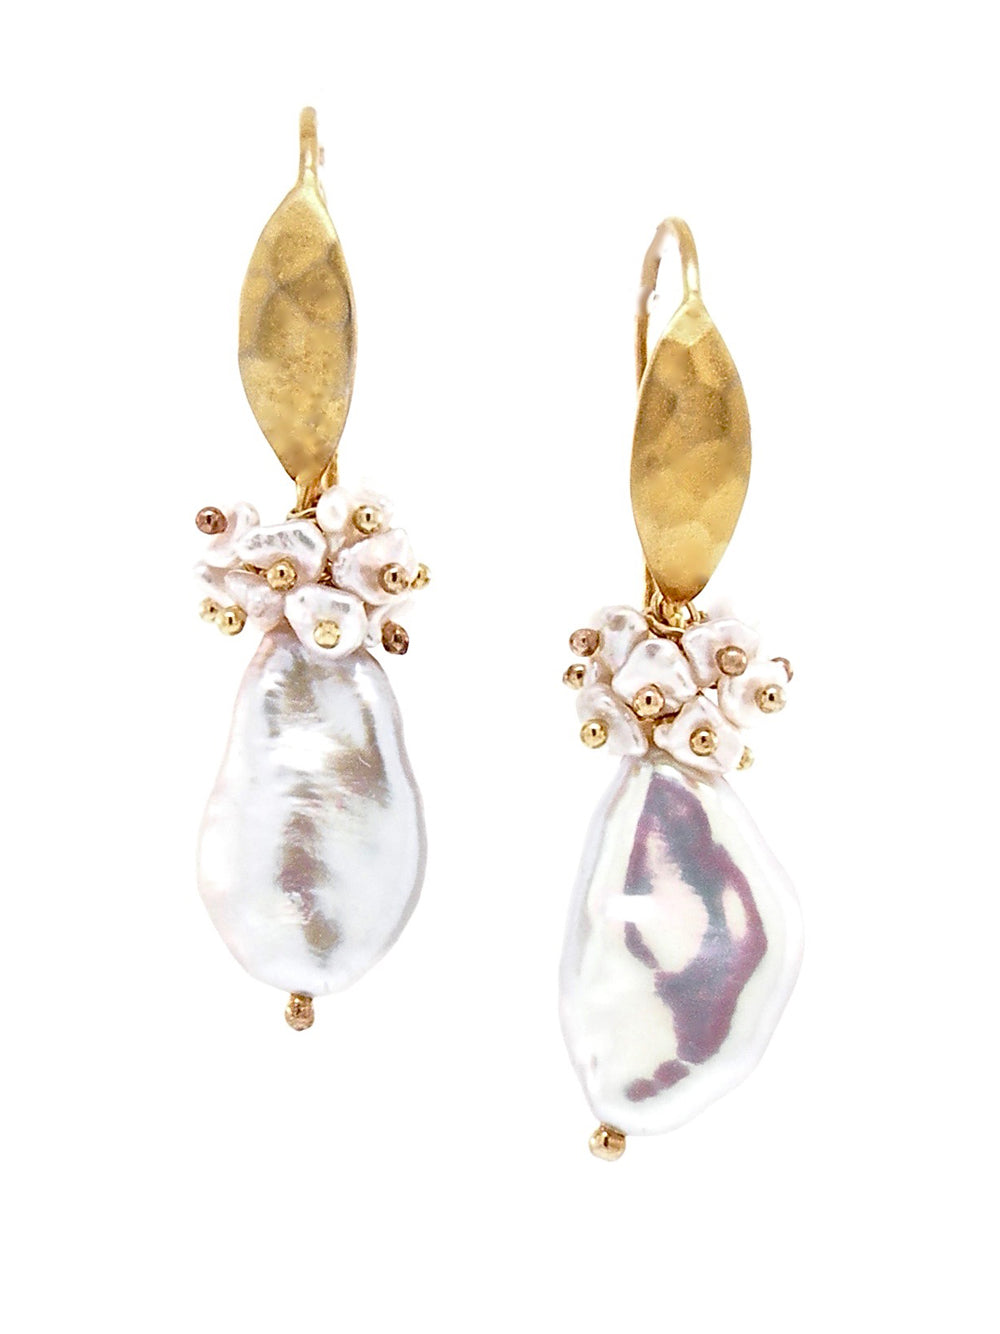 Blooming Pearls of Spain Earrings - Dana Busch Designs